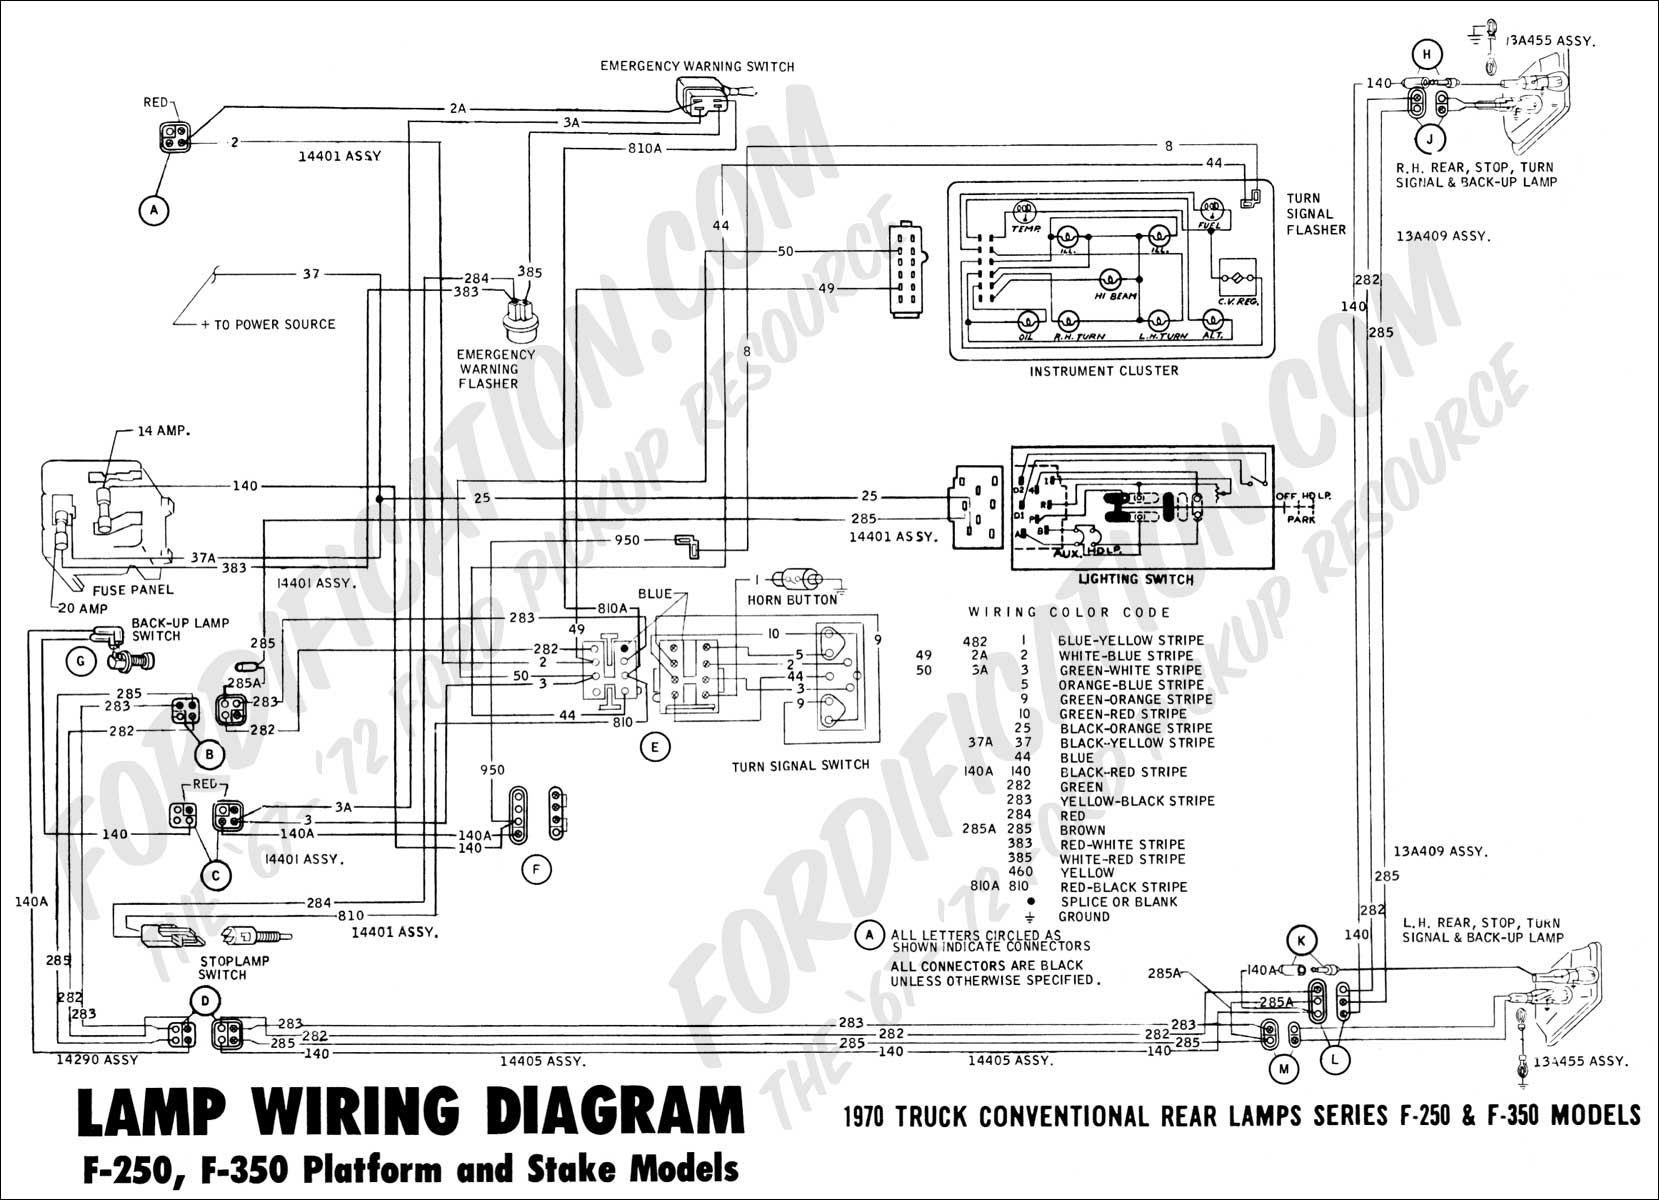 wiring diagram_70f250350_rearlamps01 1992 ford f 150 light wiring diagram on 1992 download wirning diagrams ford wiring schematics at bayanpartner.co